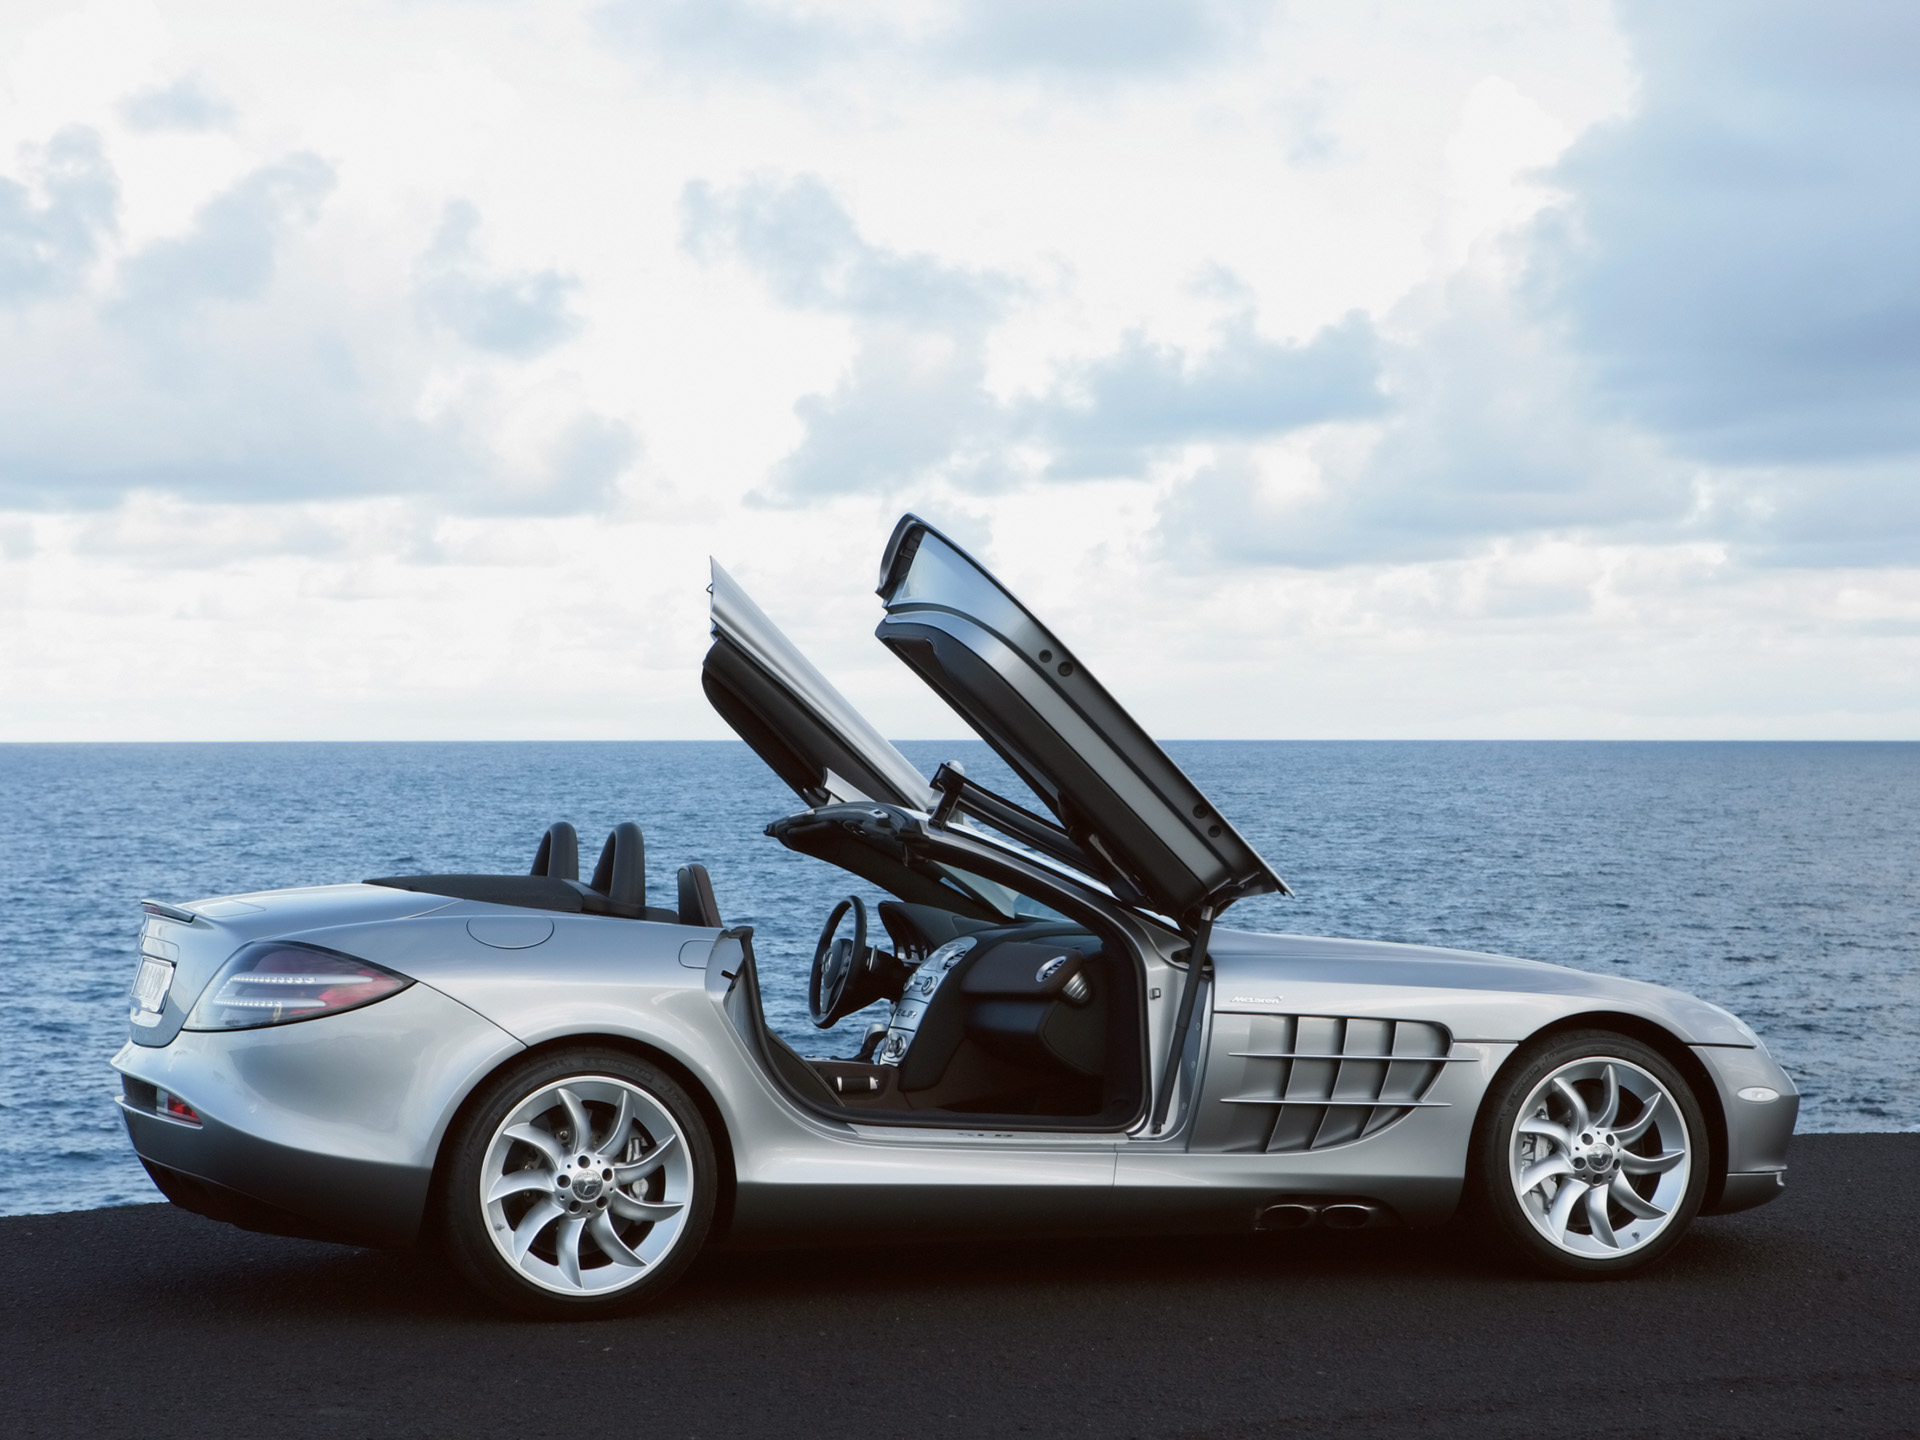 SLR Roadster 2008 Open Doors